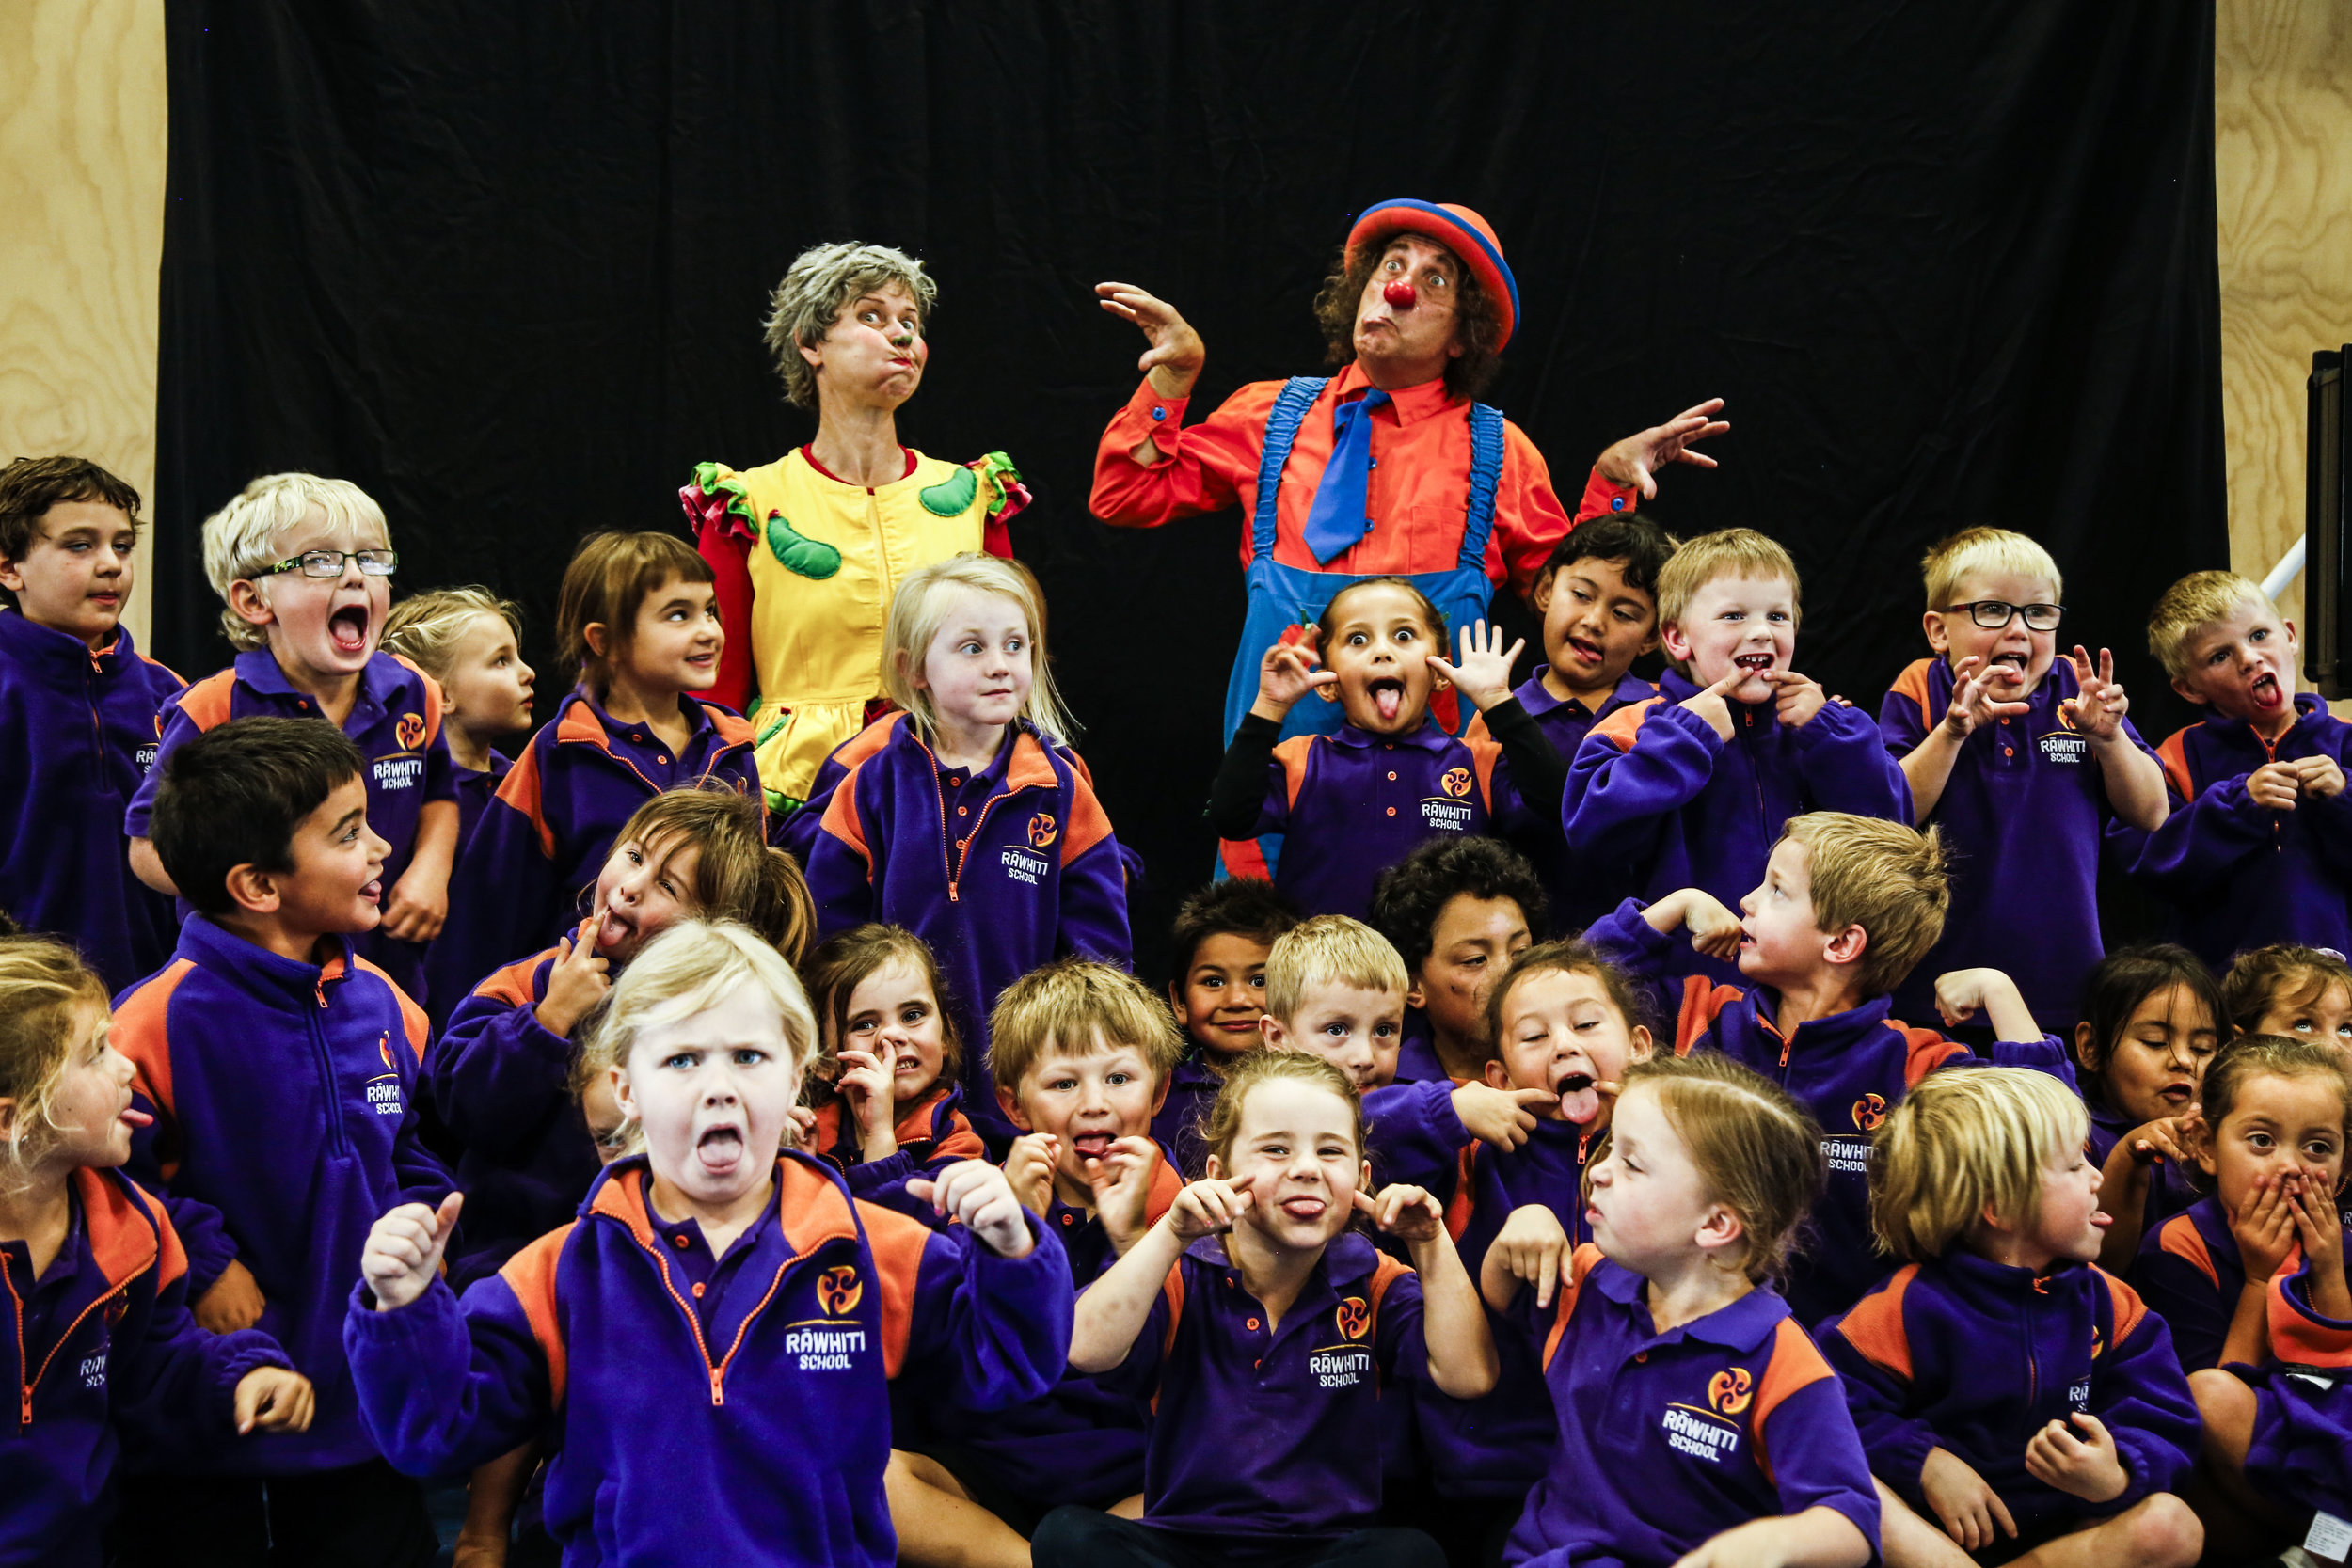 "Wingfield (left) and Carrow (right) pose for pictures with the students after their performance on May 6, 2016 at Rawhiti School in Christchurch, NZ. ""I love seeing the joy in children when we perform,"" says Wingfield."